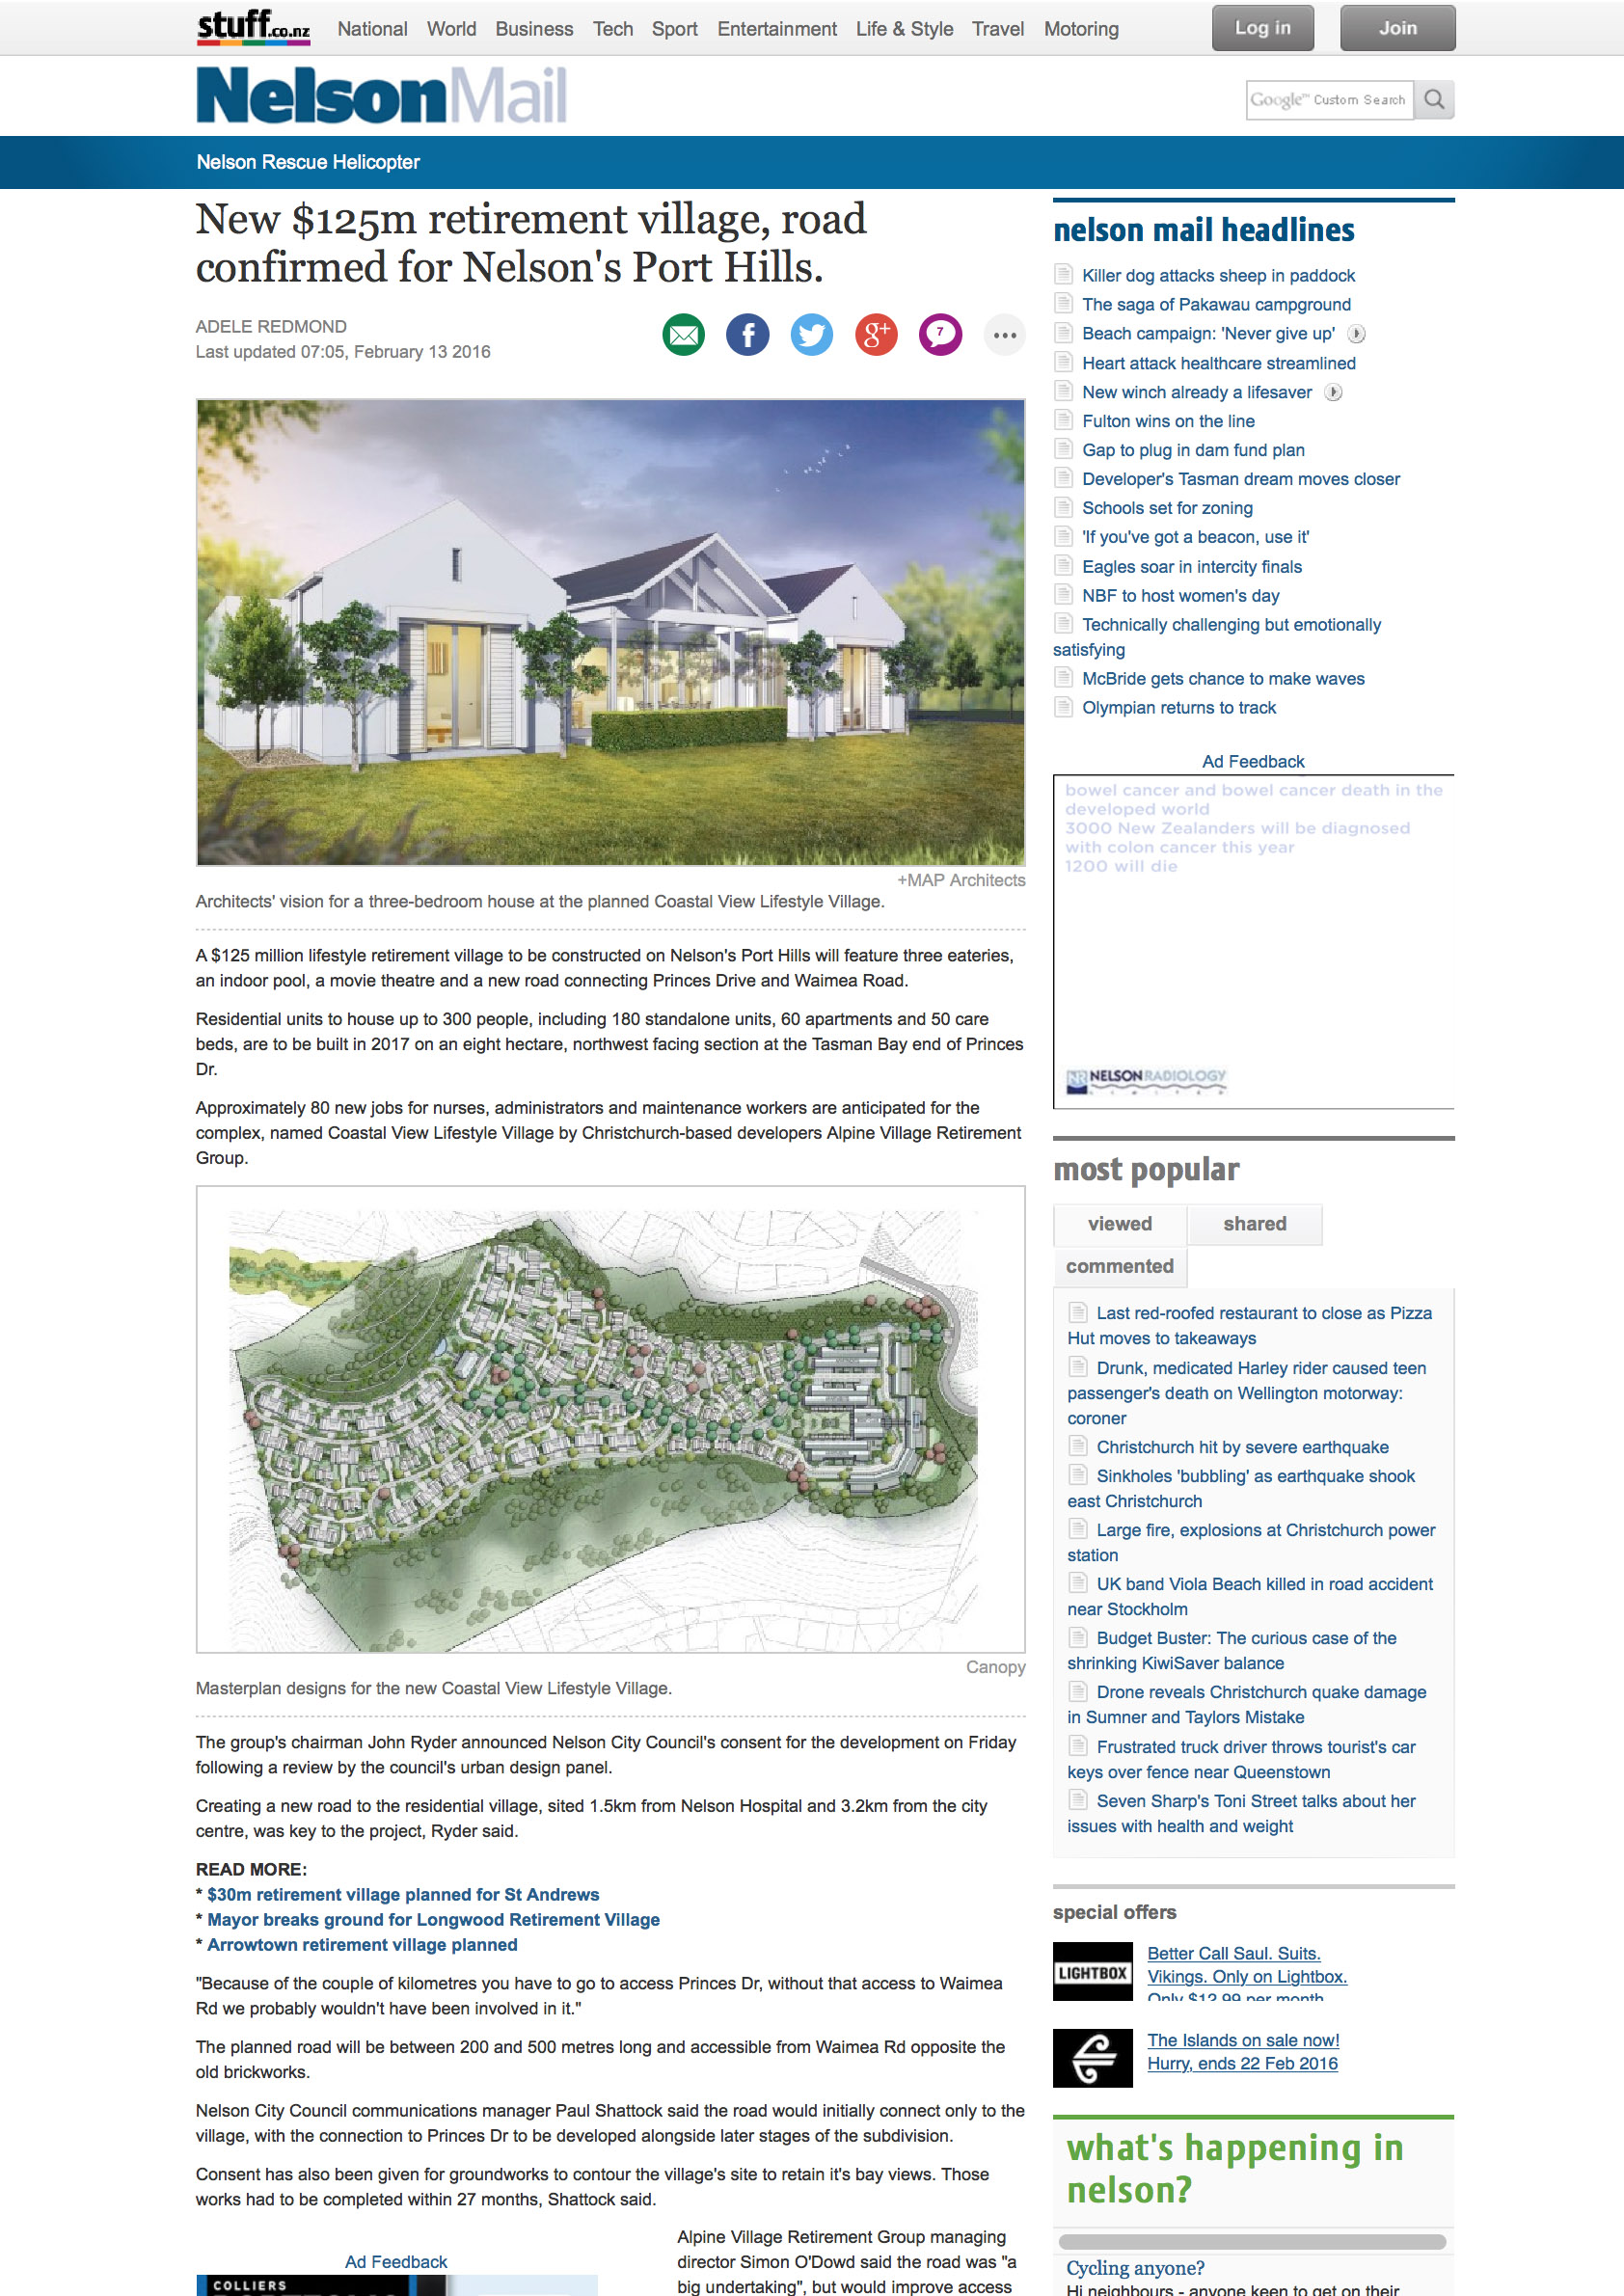 Nelson mail article.jpg